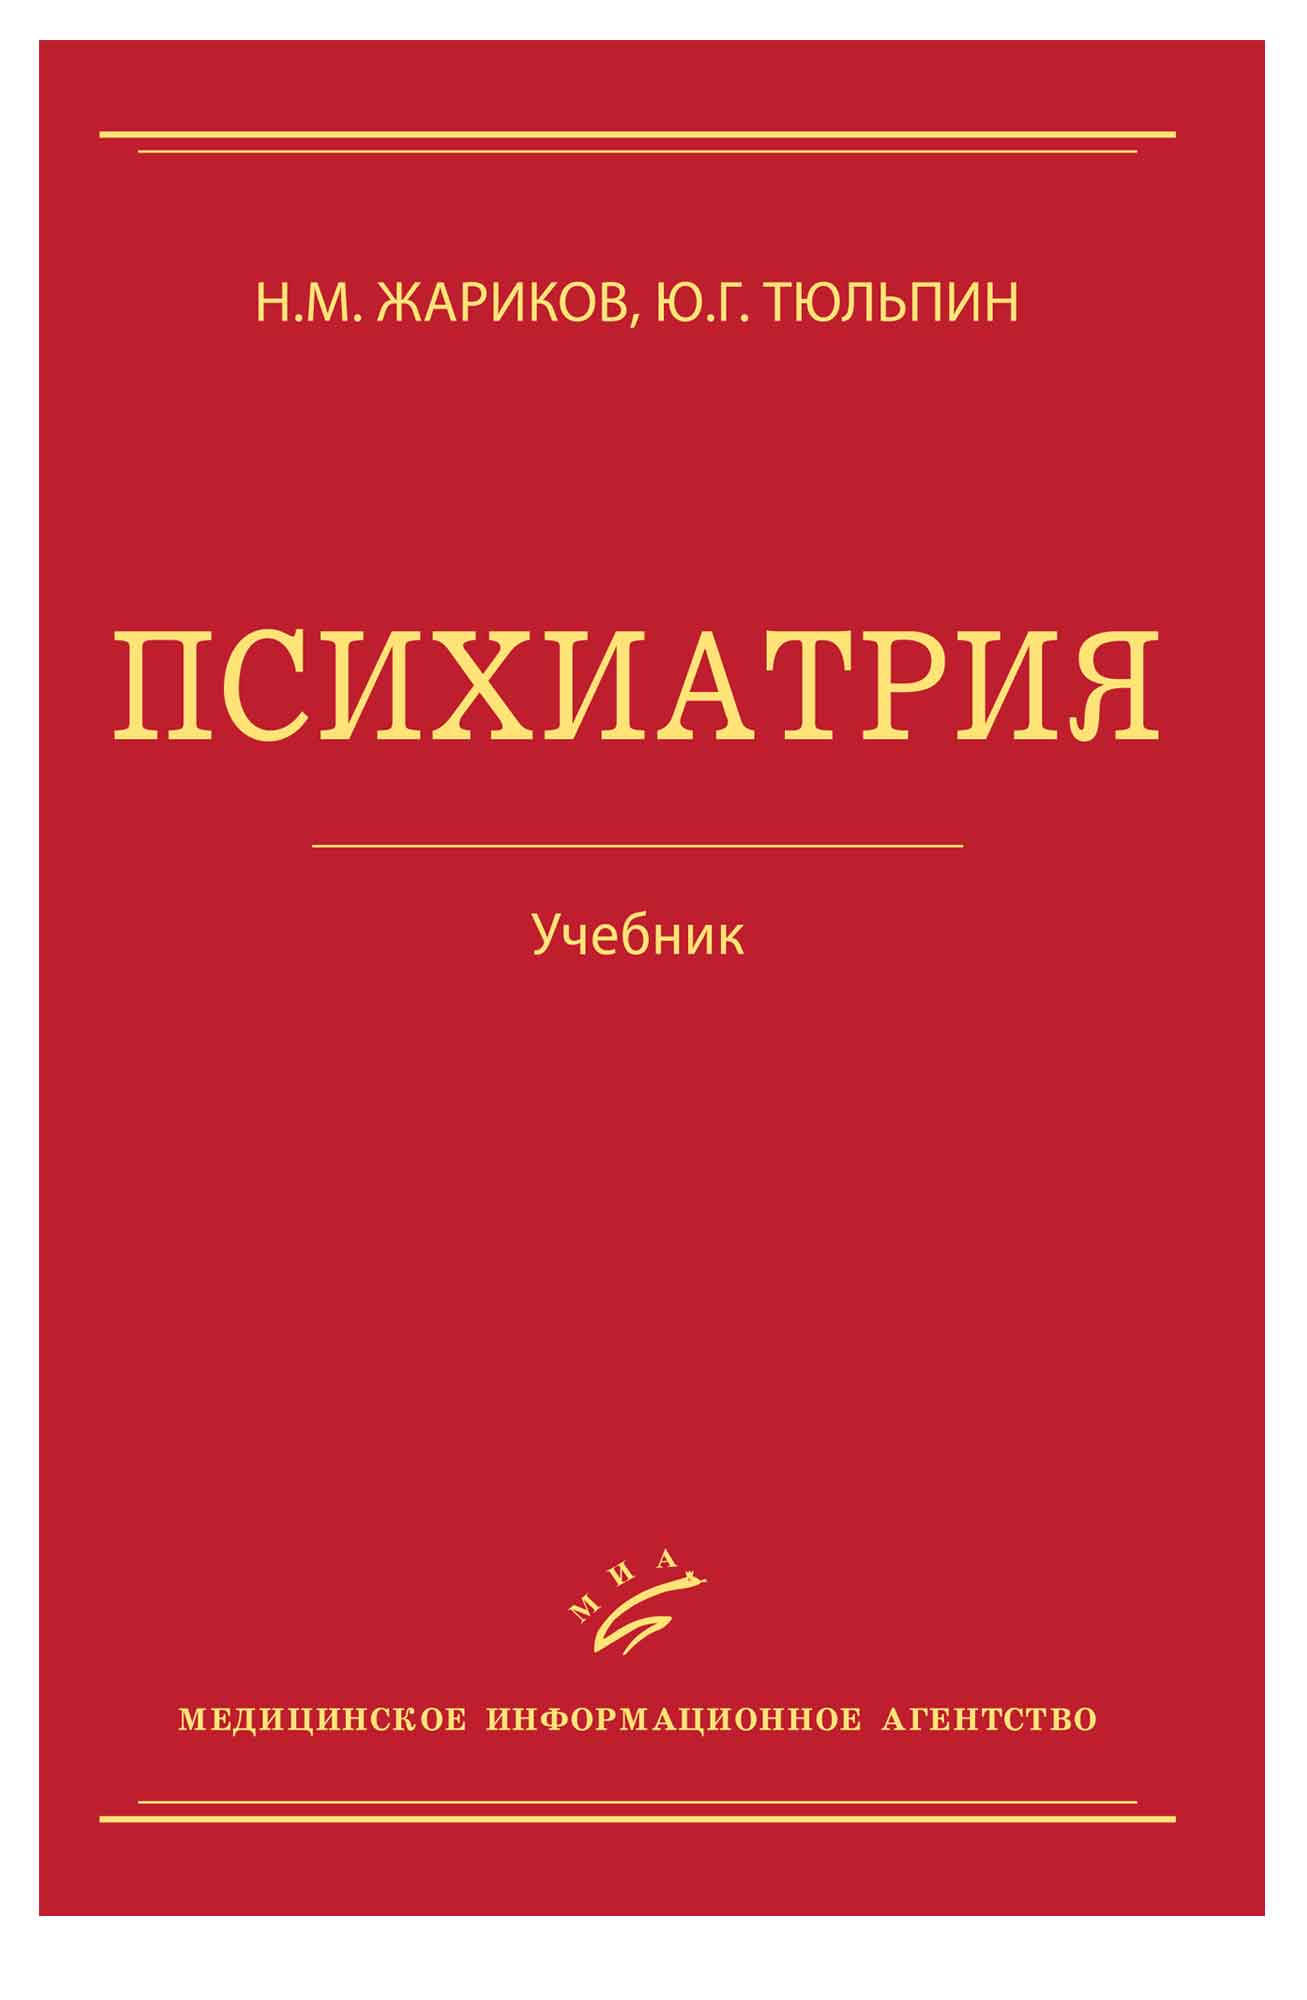 book Vergil\\'s Eclogues